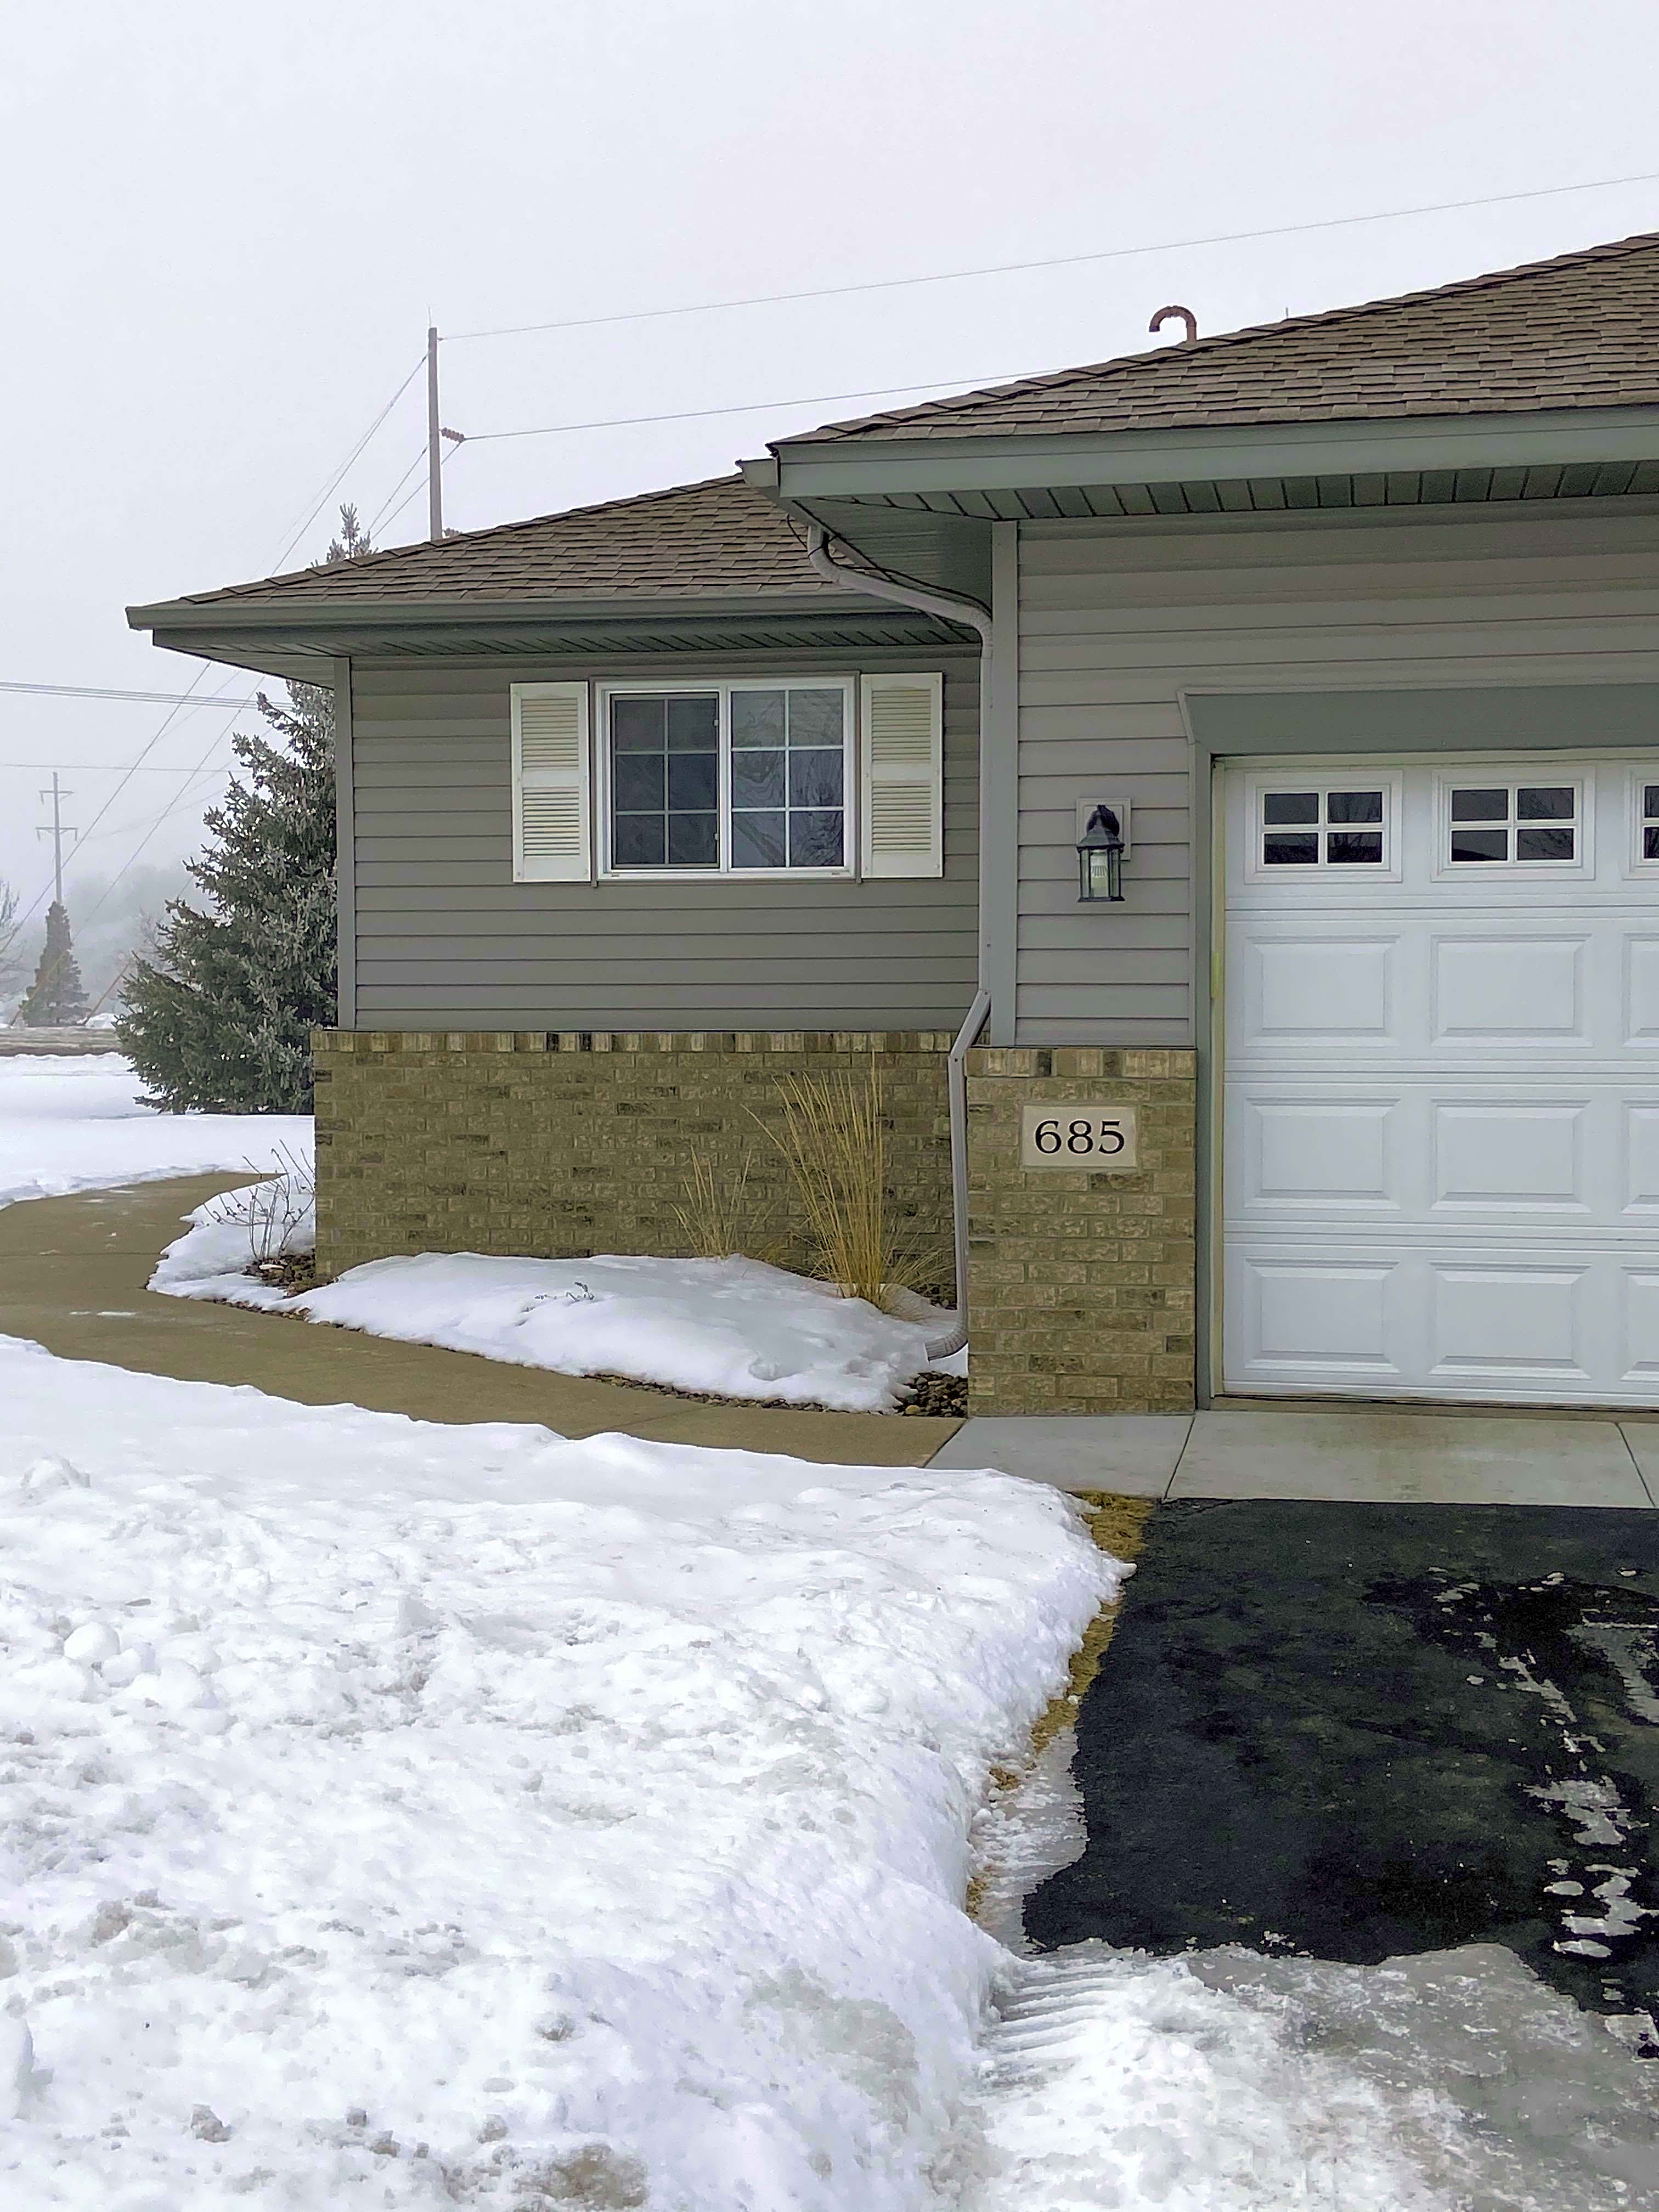 Condo for Rent in Big Lake